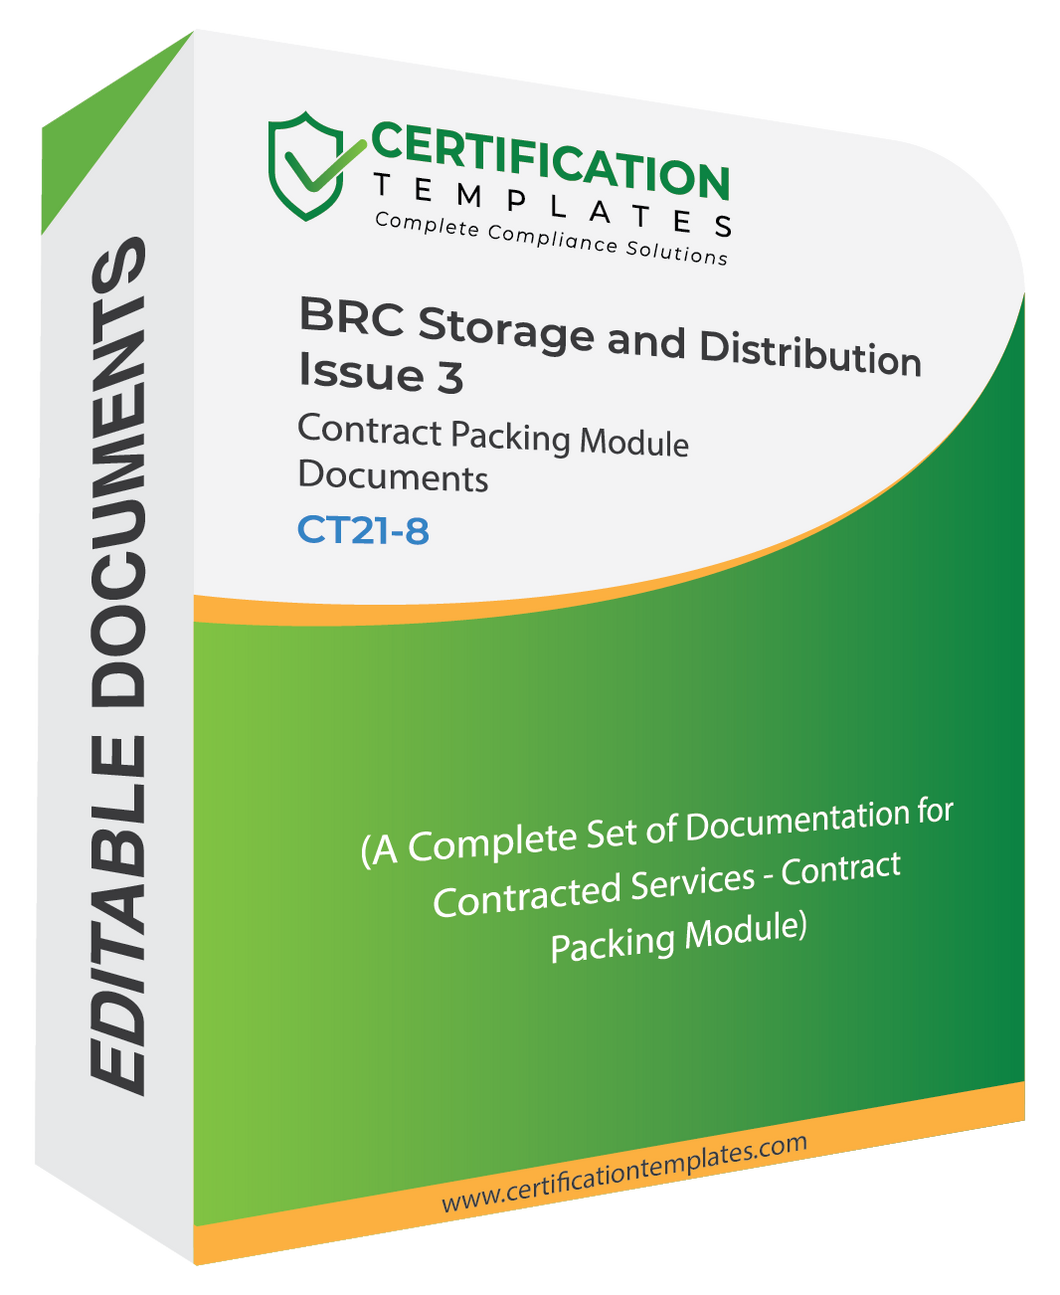 BRC S&D Contract Packing